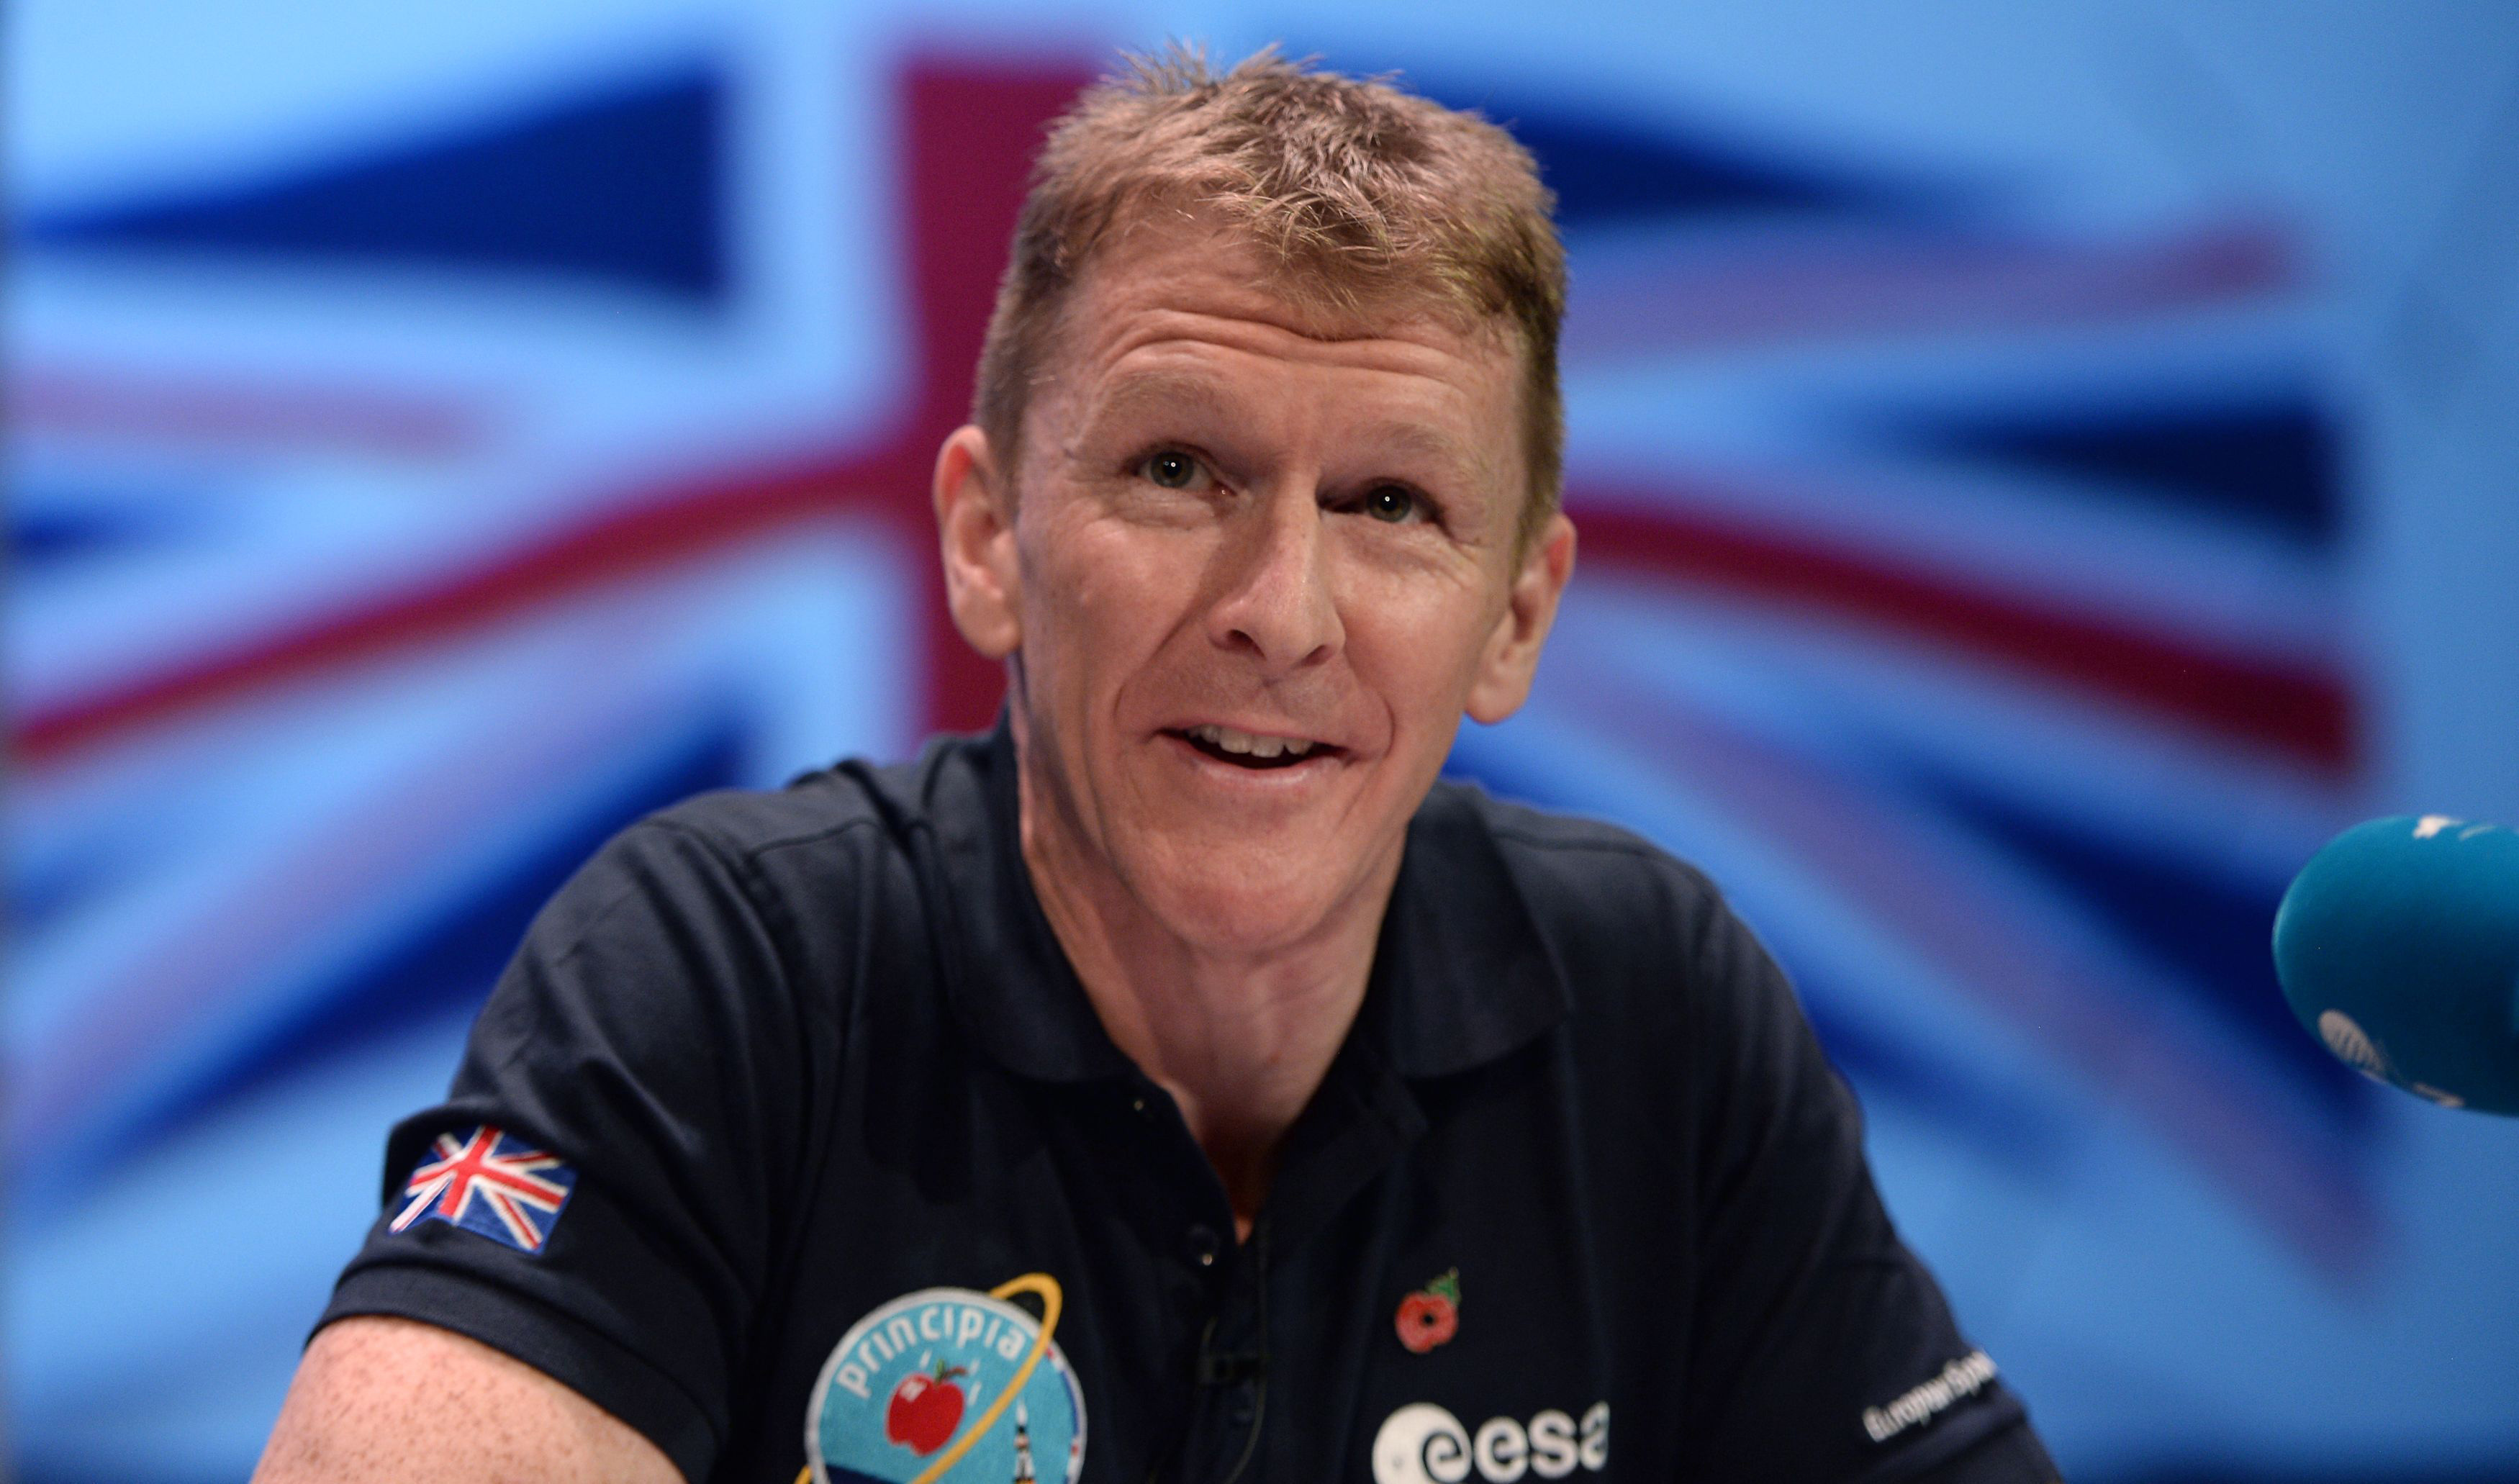 British astronaut Tim Peake to run marathon (Anthony Devlin/PA Wire)